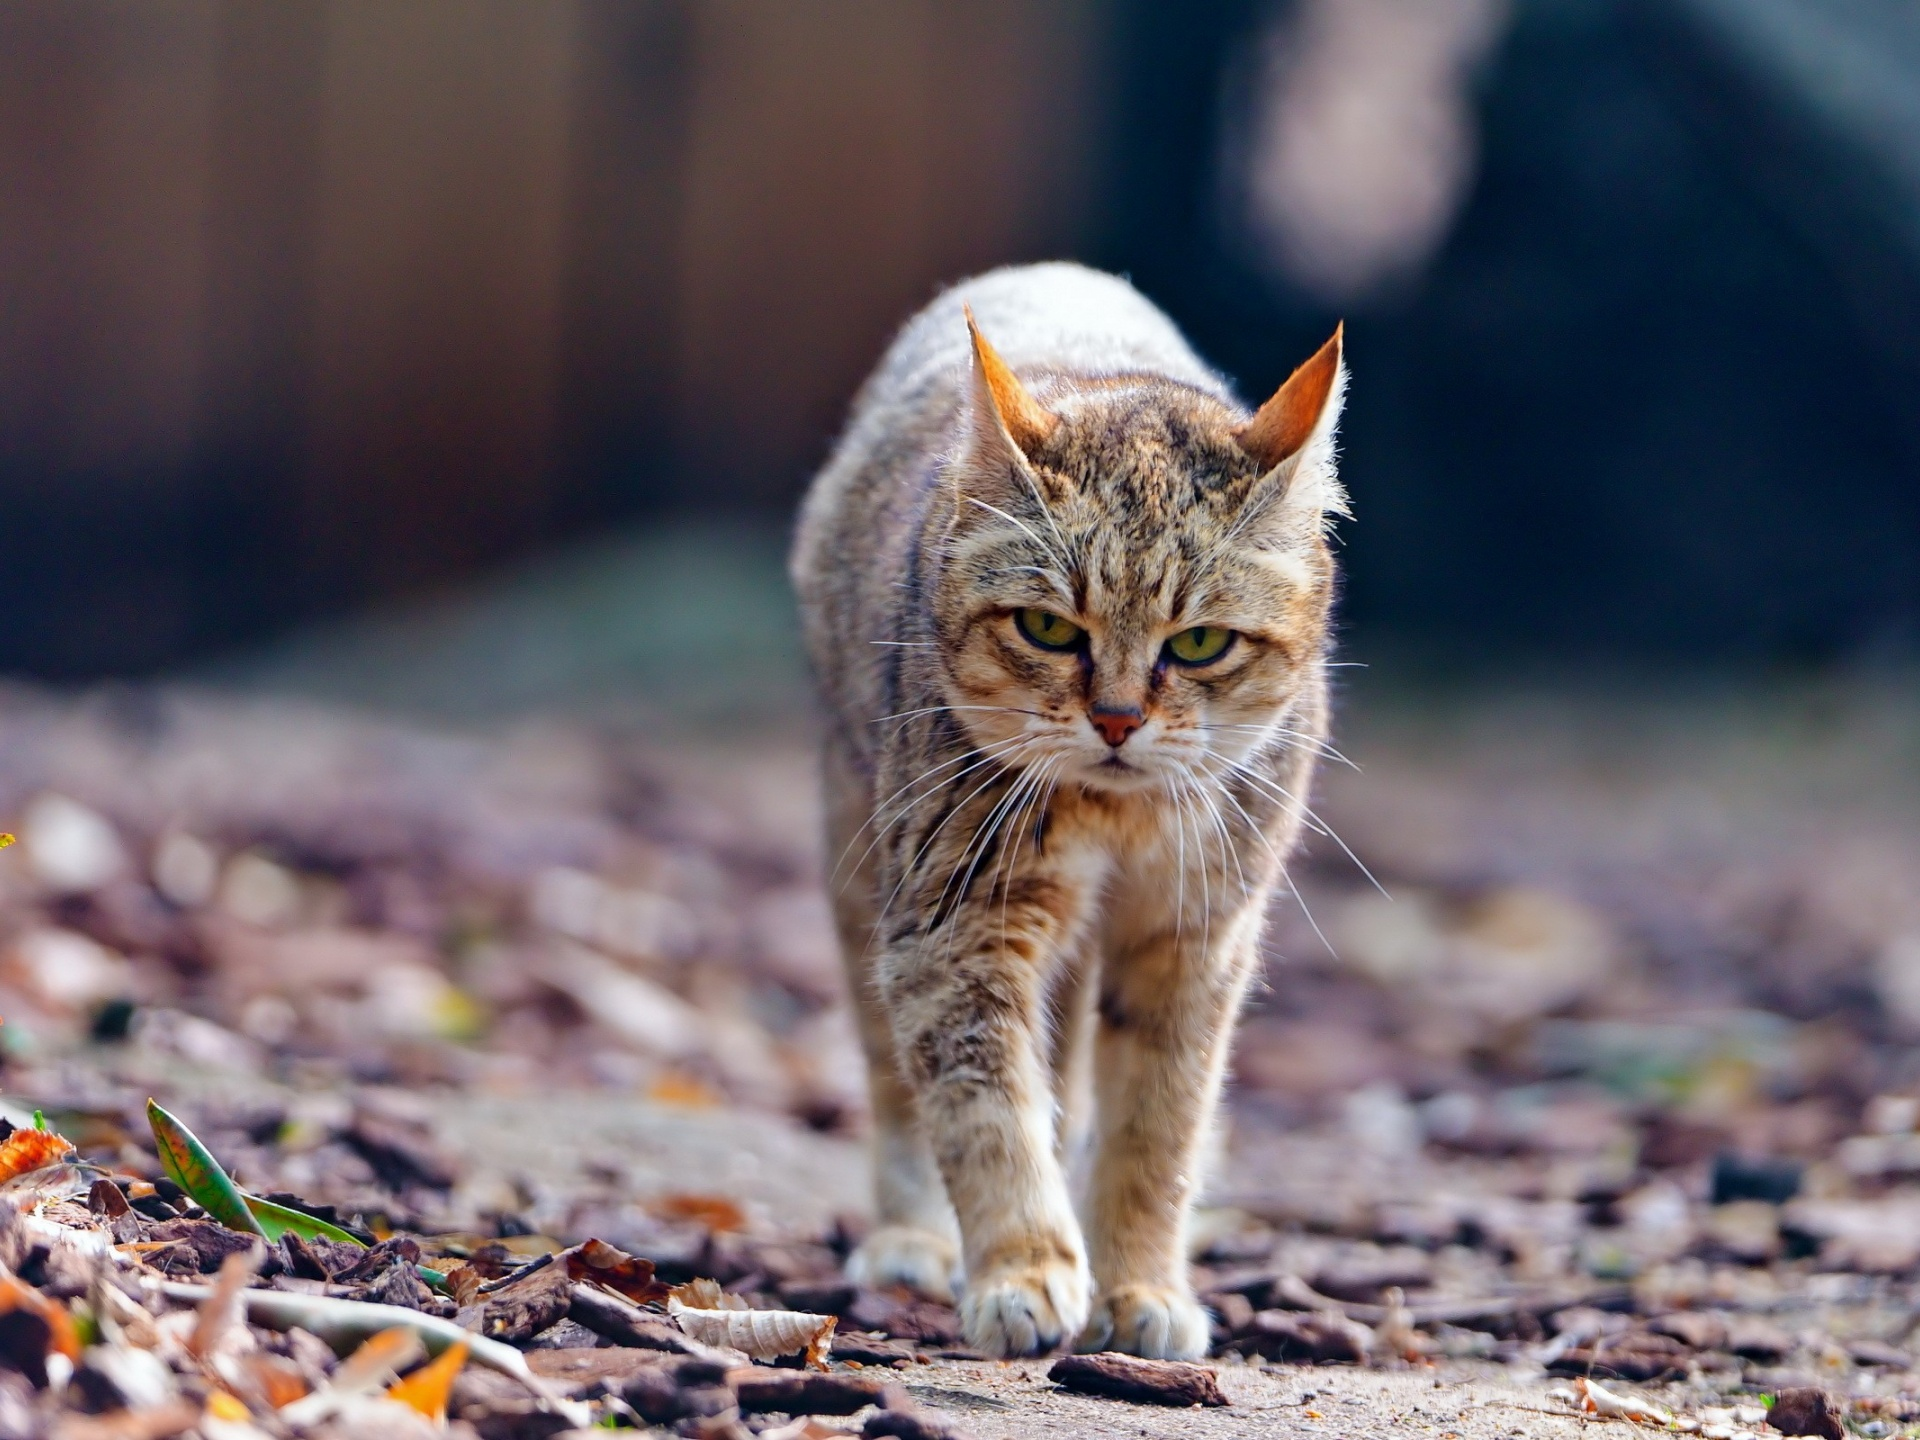 click to free download the wallpaper--Cute Kitties Image, Walking Kitty, Serious in Look, Is It Irritated? 1920X1440 free wallpaper download